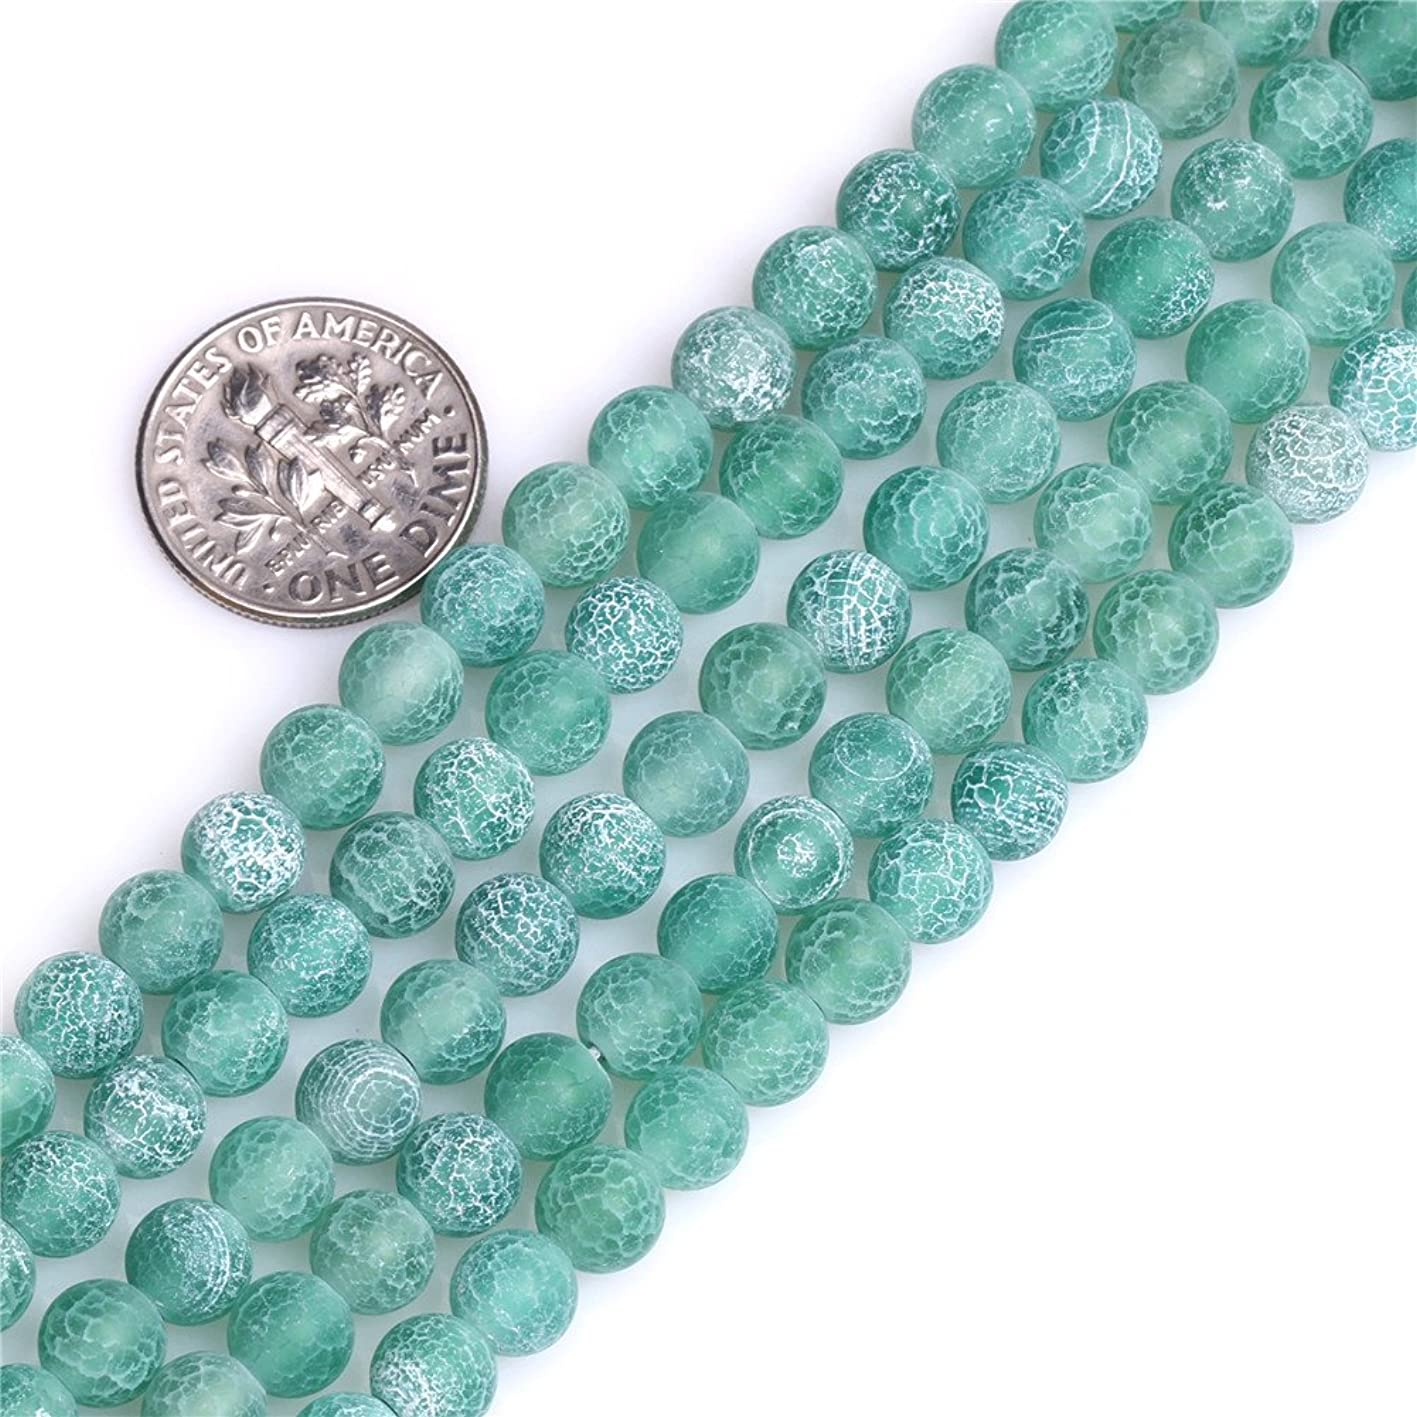 Green Agate Beads for Jewelry Making Natural Gemstone Semi Precious 6mm Round Frosted Matte 15